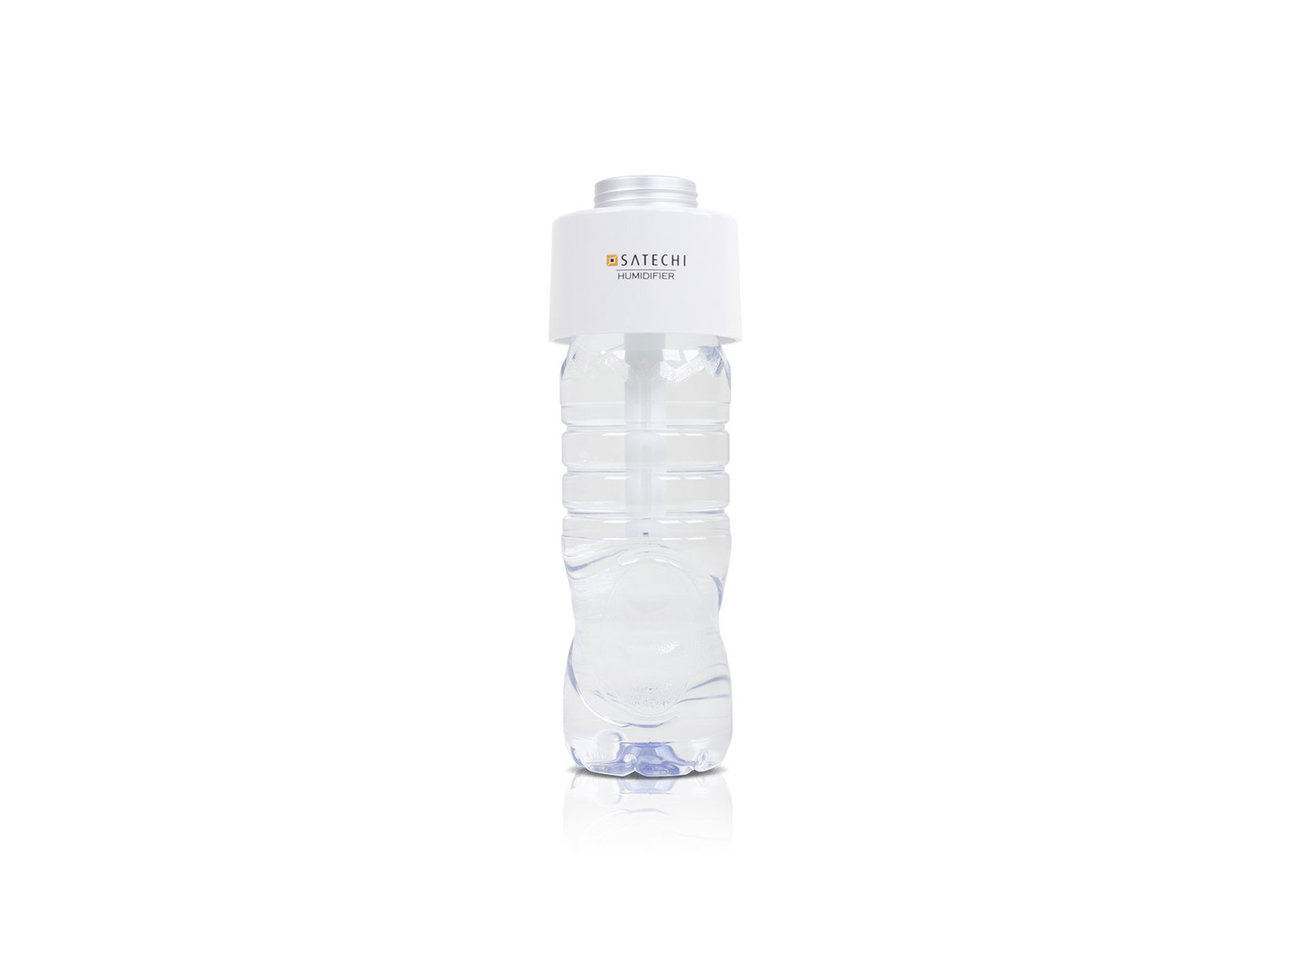 Tech-satechi-portable-humidifier-GG1115.jpg